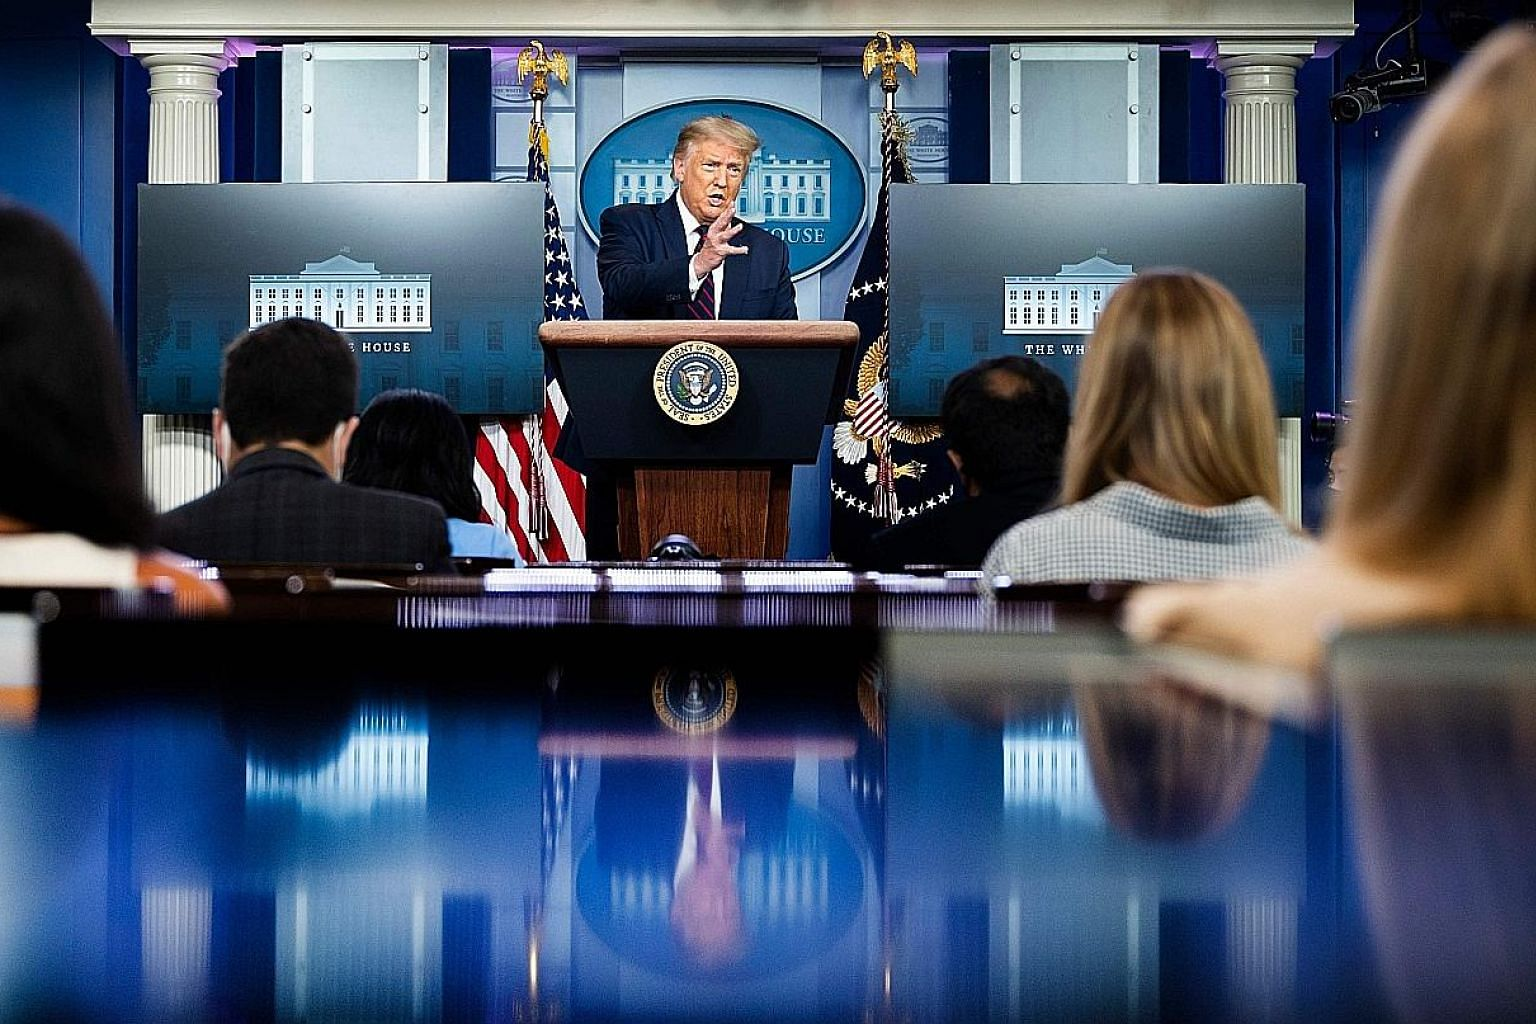 US President Donald Trump at the White House briefing on Tuesday. His reversal from his initial downplaying of the seriousness of the virus comes amid a spate of polls showing his Democratic rival Joe Biden expanding his lead into the double digits,